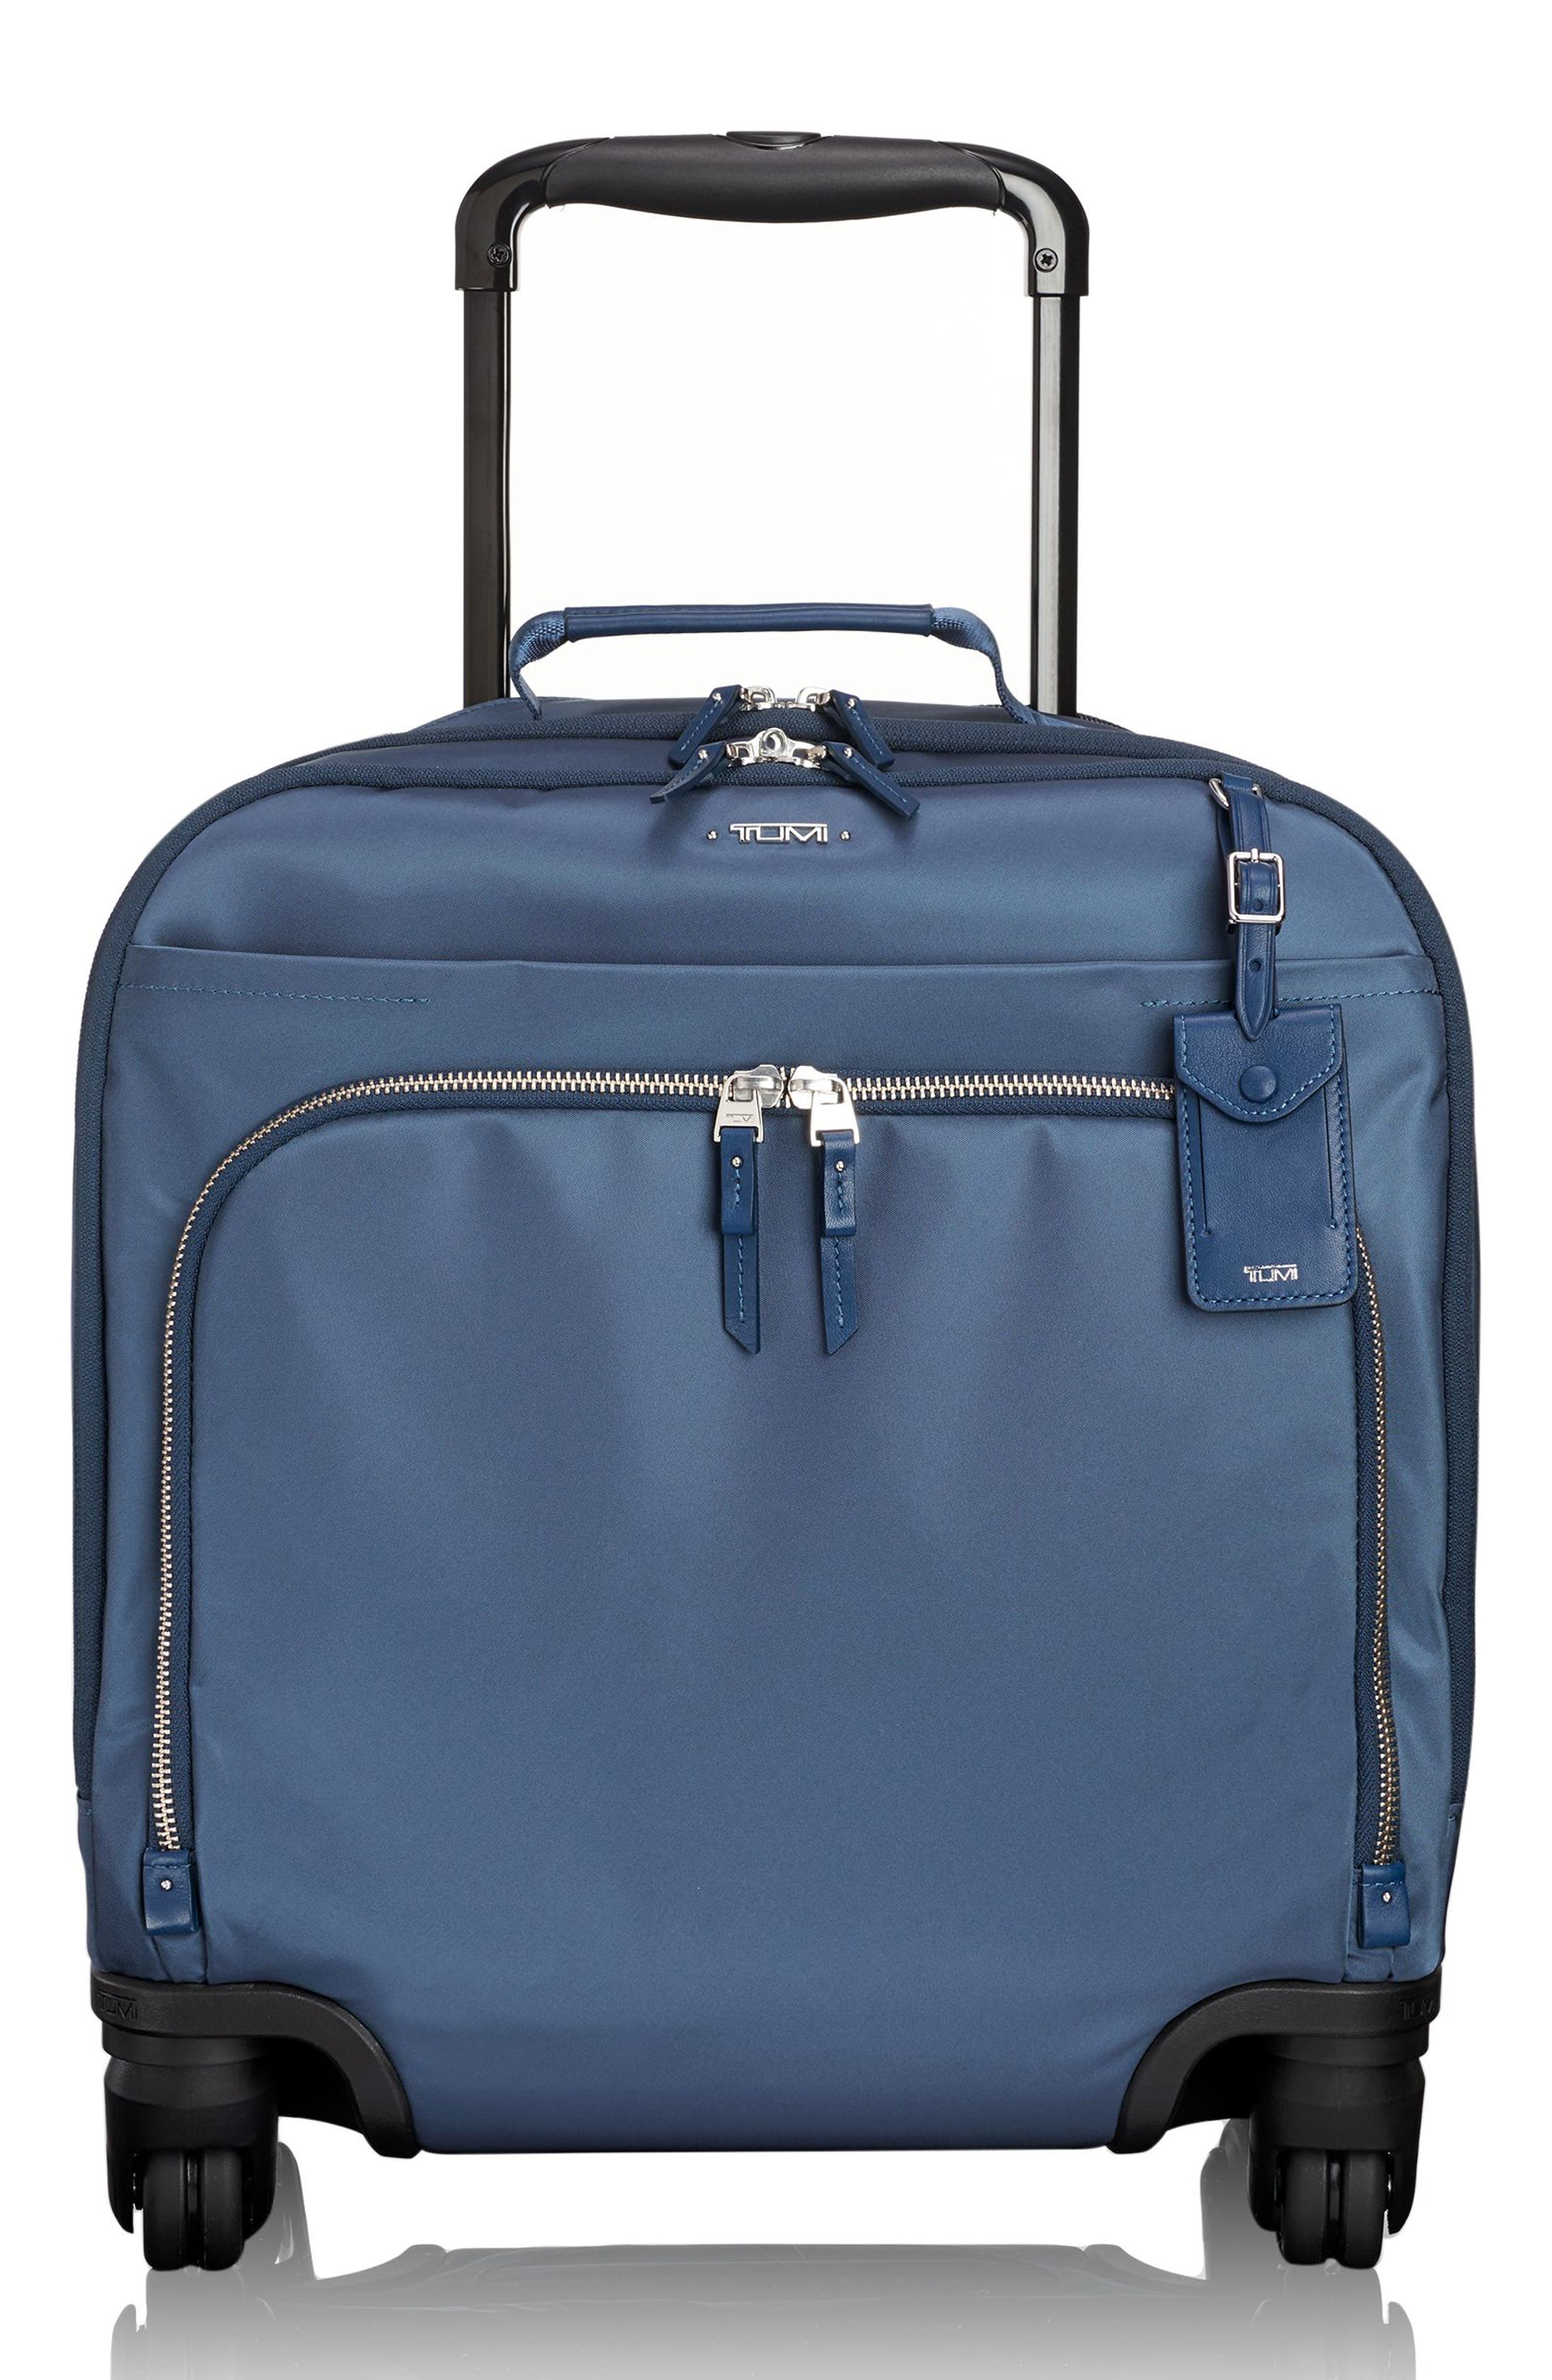 Alternate Image 1 Selected - Tumi 'Voyageur - Oslo' Compact Wheeled Carry-On (15 Inch)